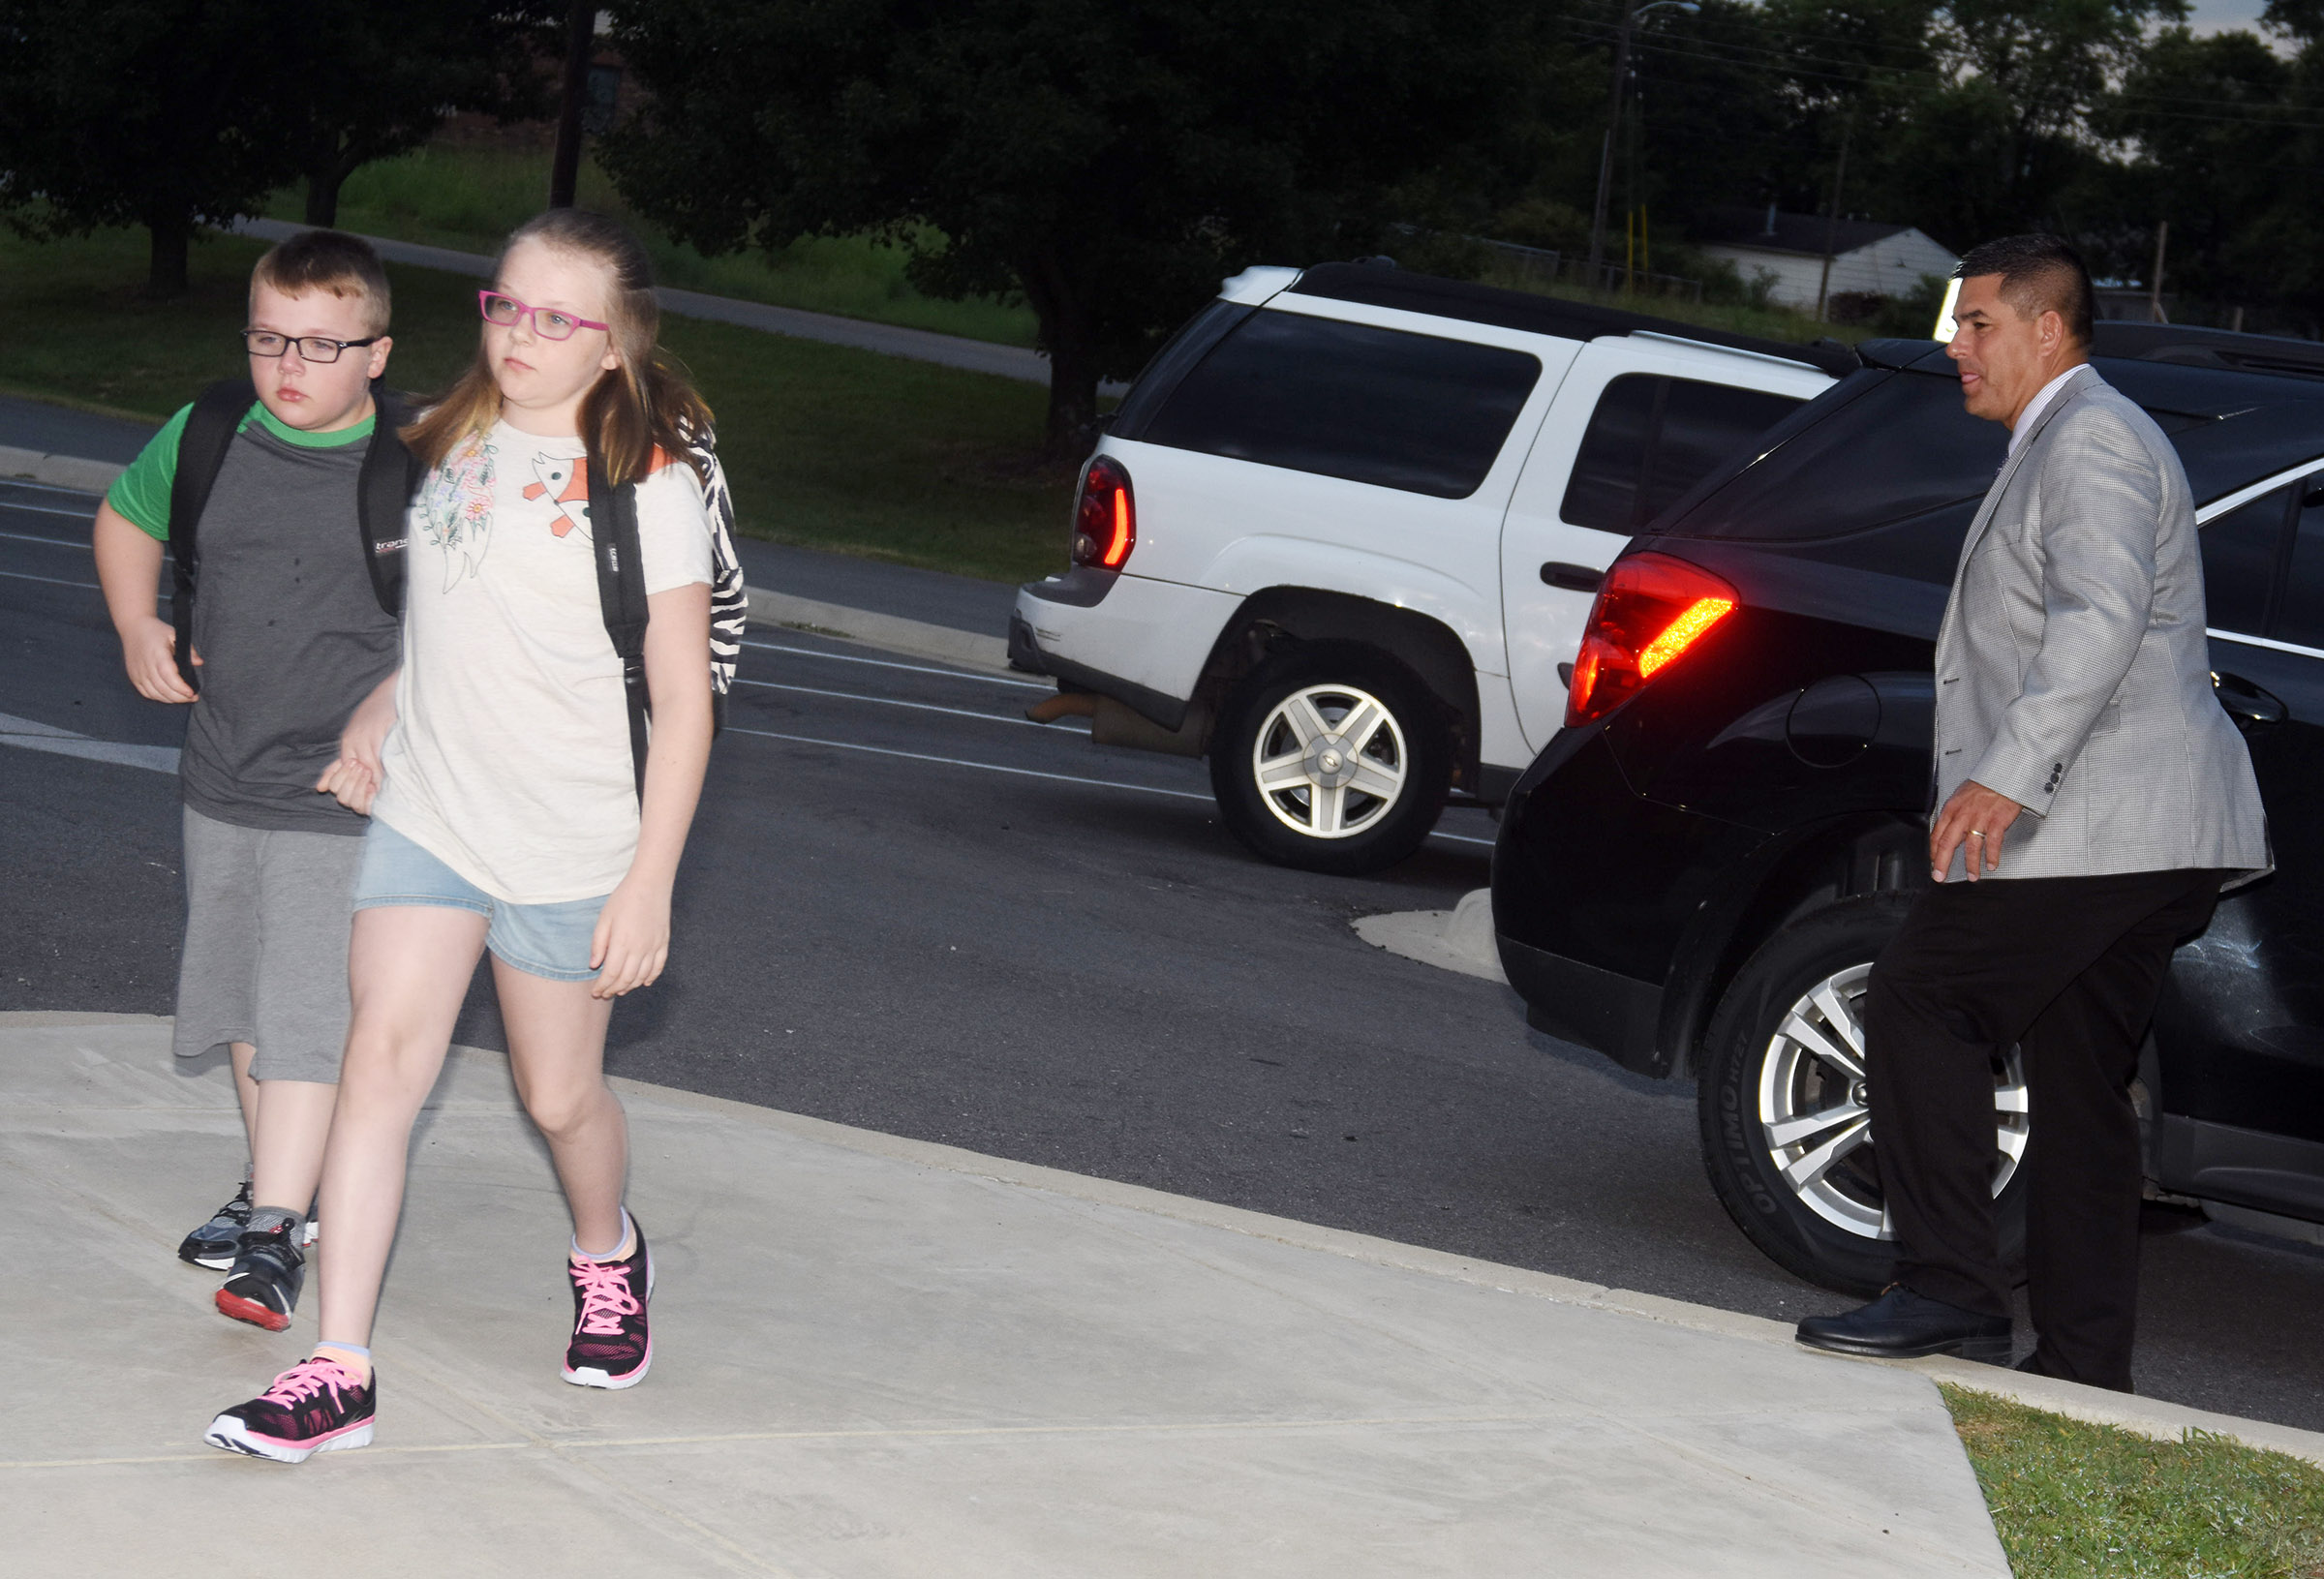 Campbellsville Elementary School fifth-grader Jaylen Clark holds her brother Hunter's hand as they walk in for the first day of school. Hunter is a third-grader at CES.